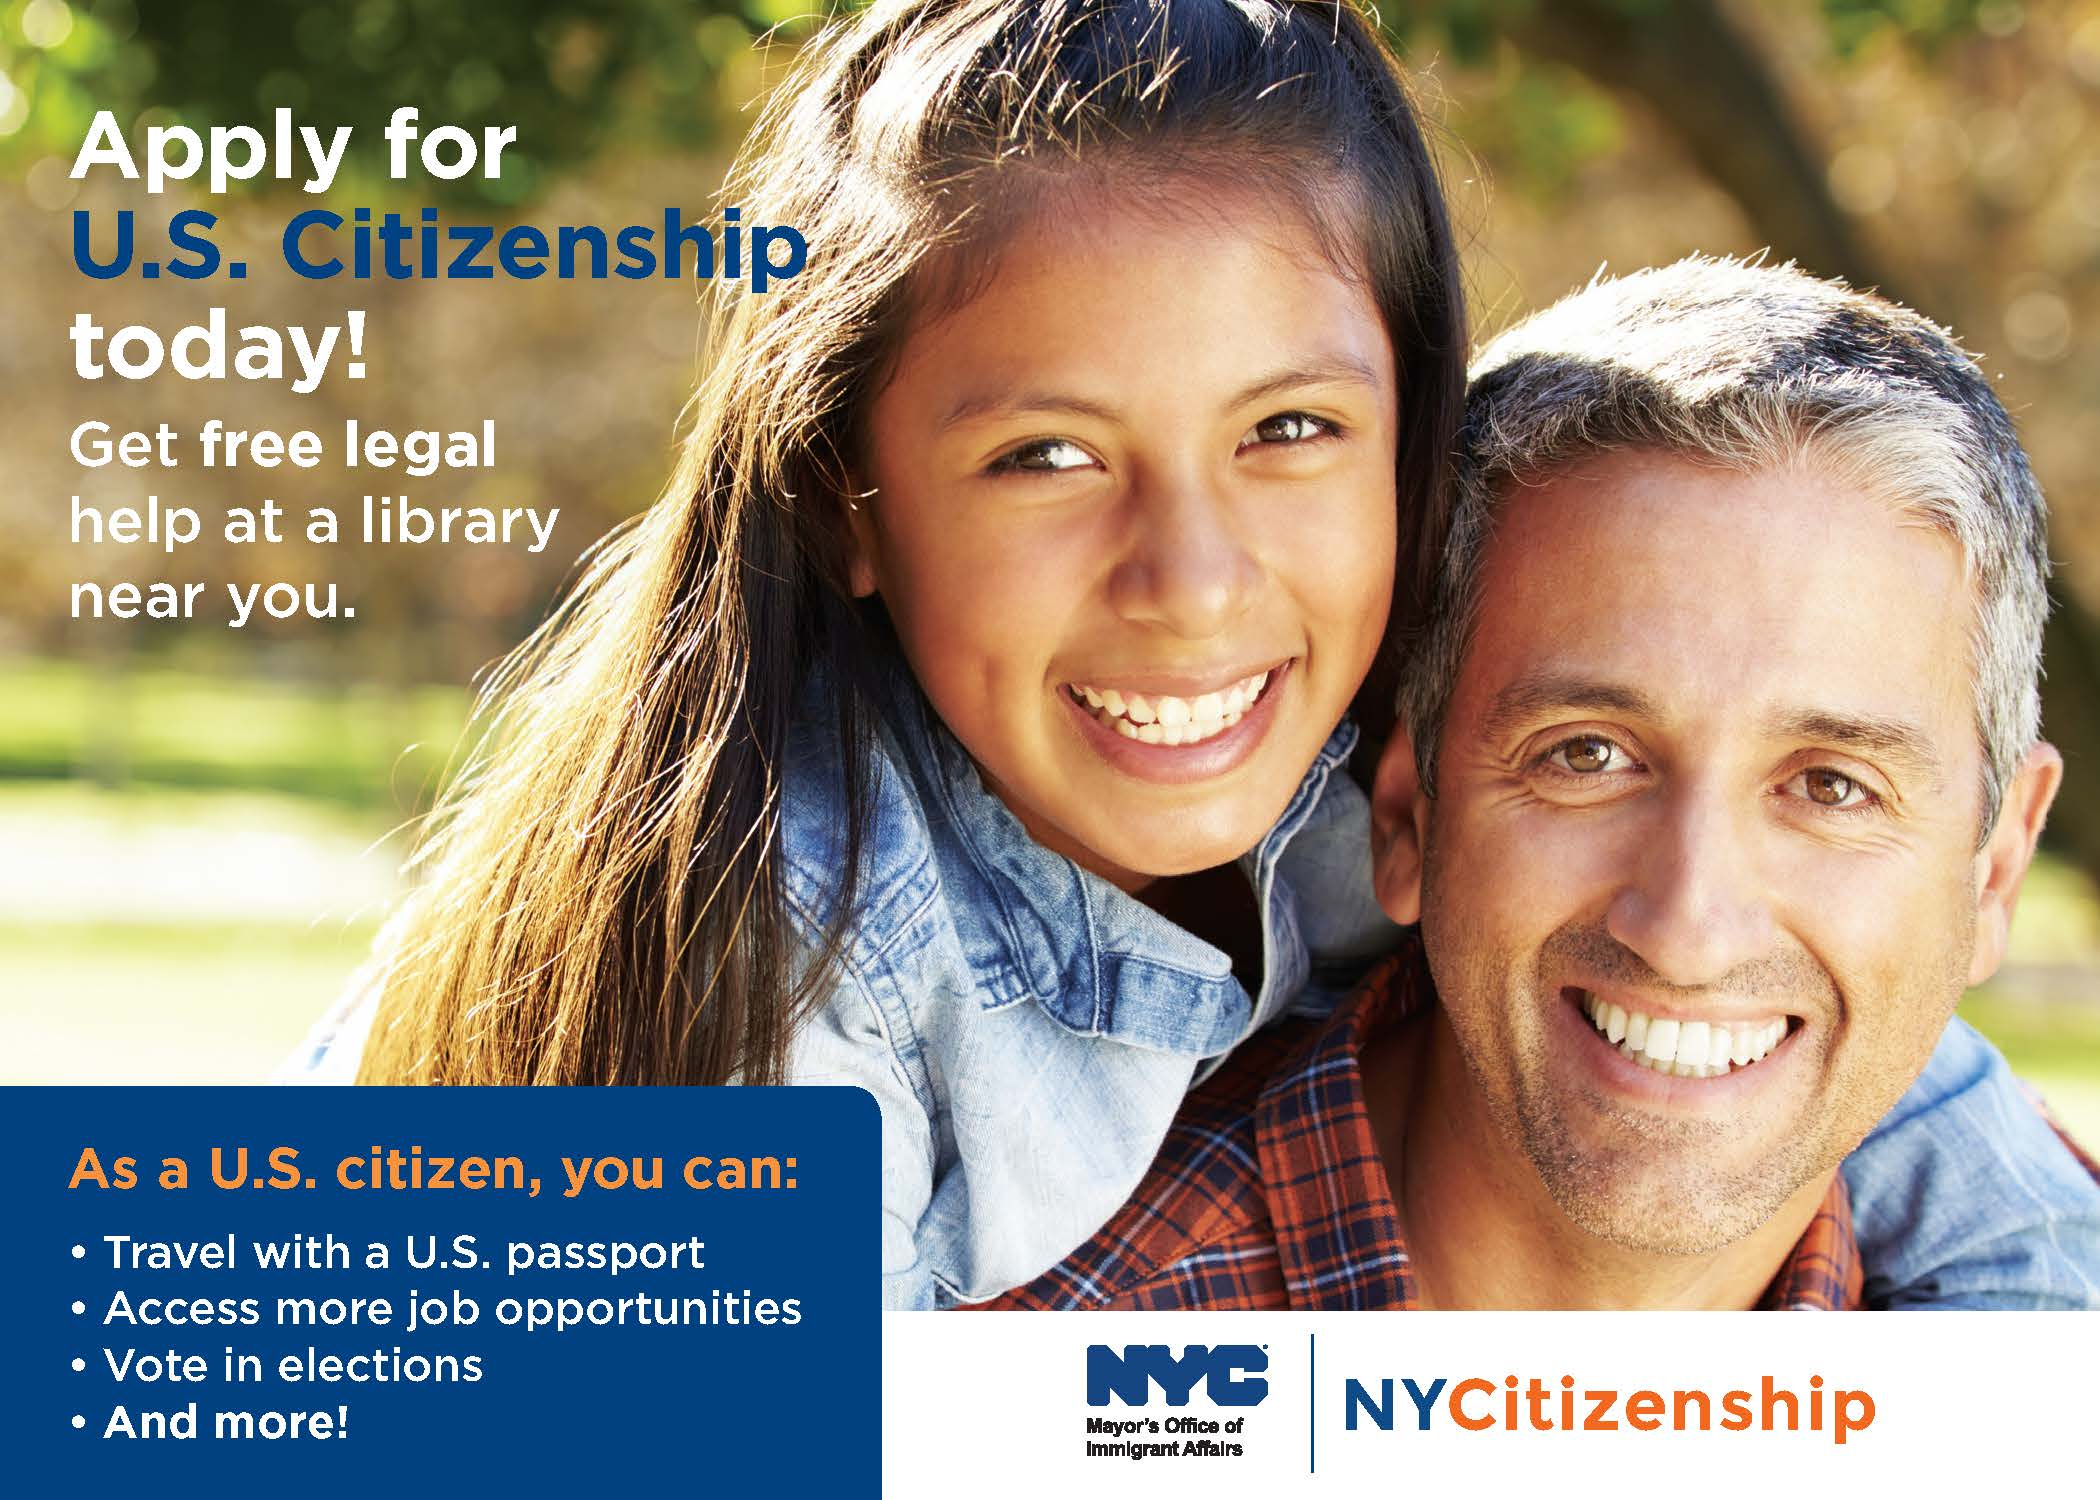 Poster for NYCitizenship